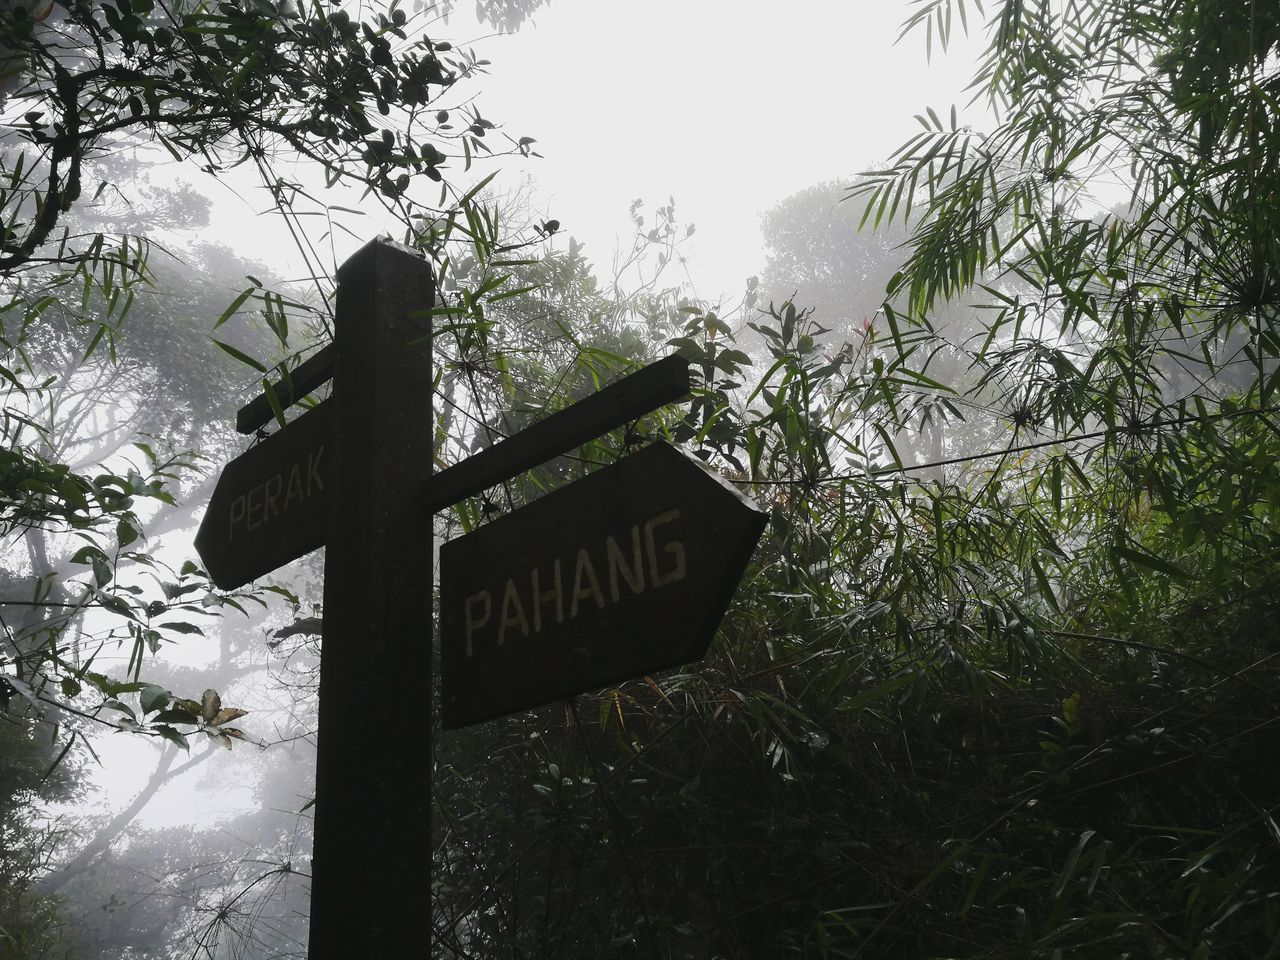 Rainforest Walks Gunungirau Cameroon Highlands Signboard Which Way To Go?